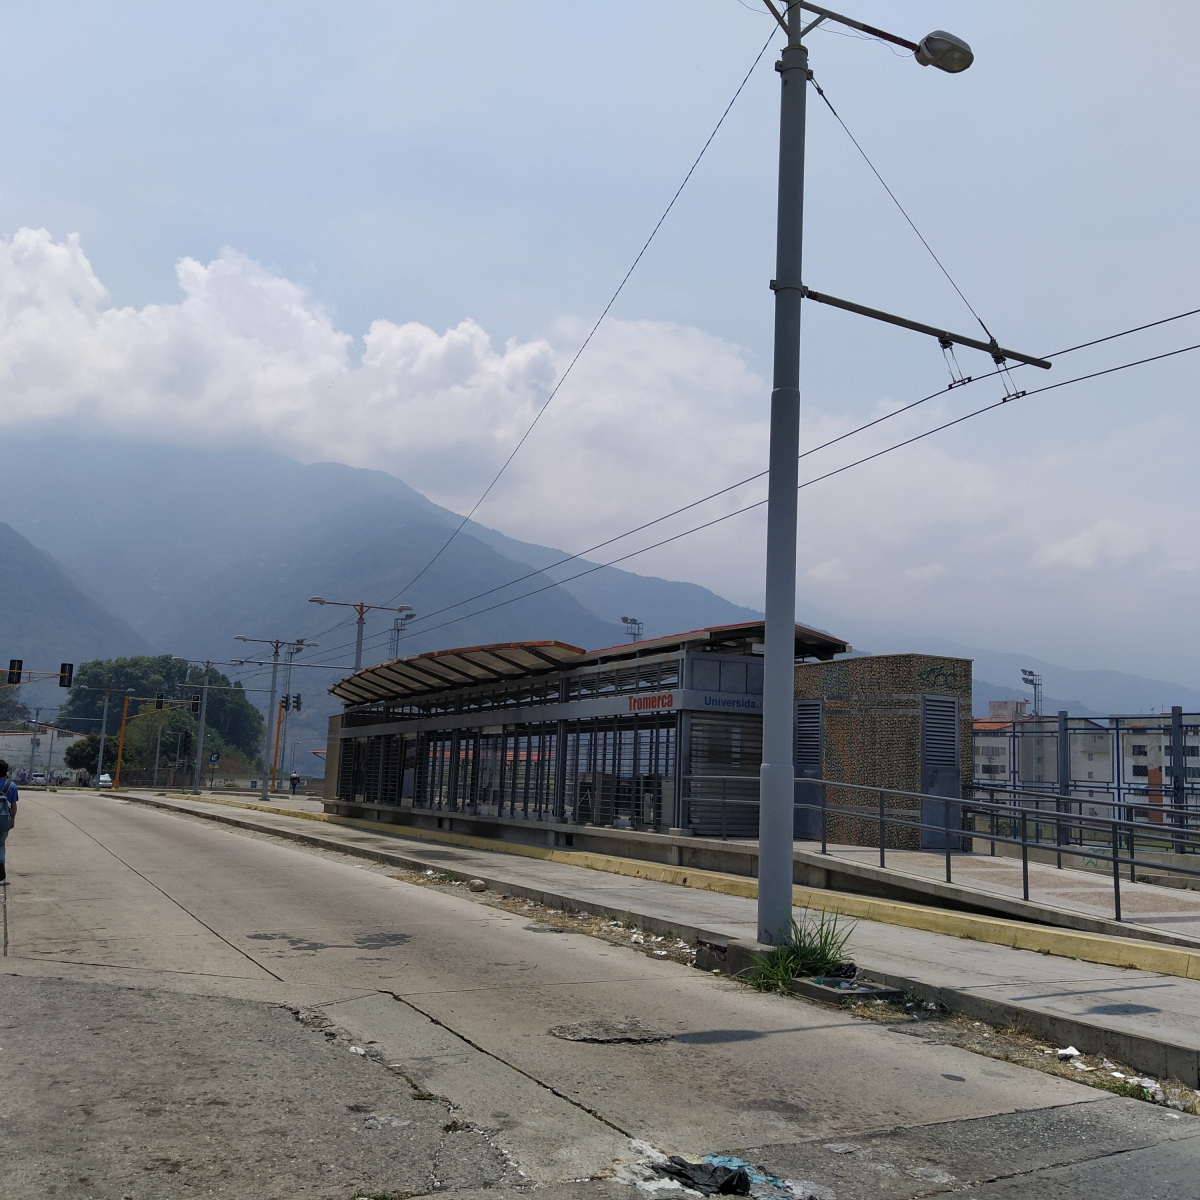 Most public transport has also been halted, with this normally highly-used tram network looking abandonded in Merida City, Merida State. (Paul Dobson / Venezuelanalysis)